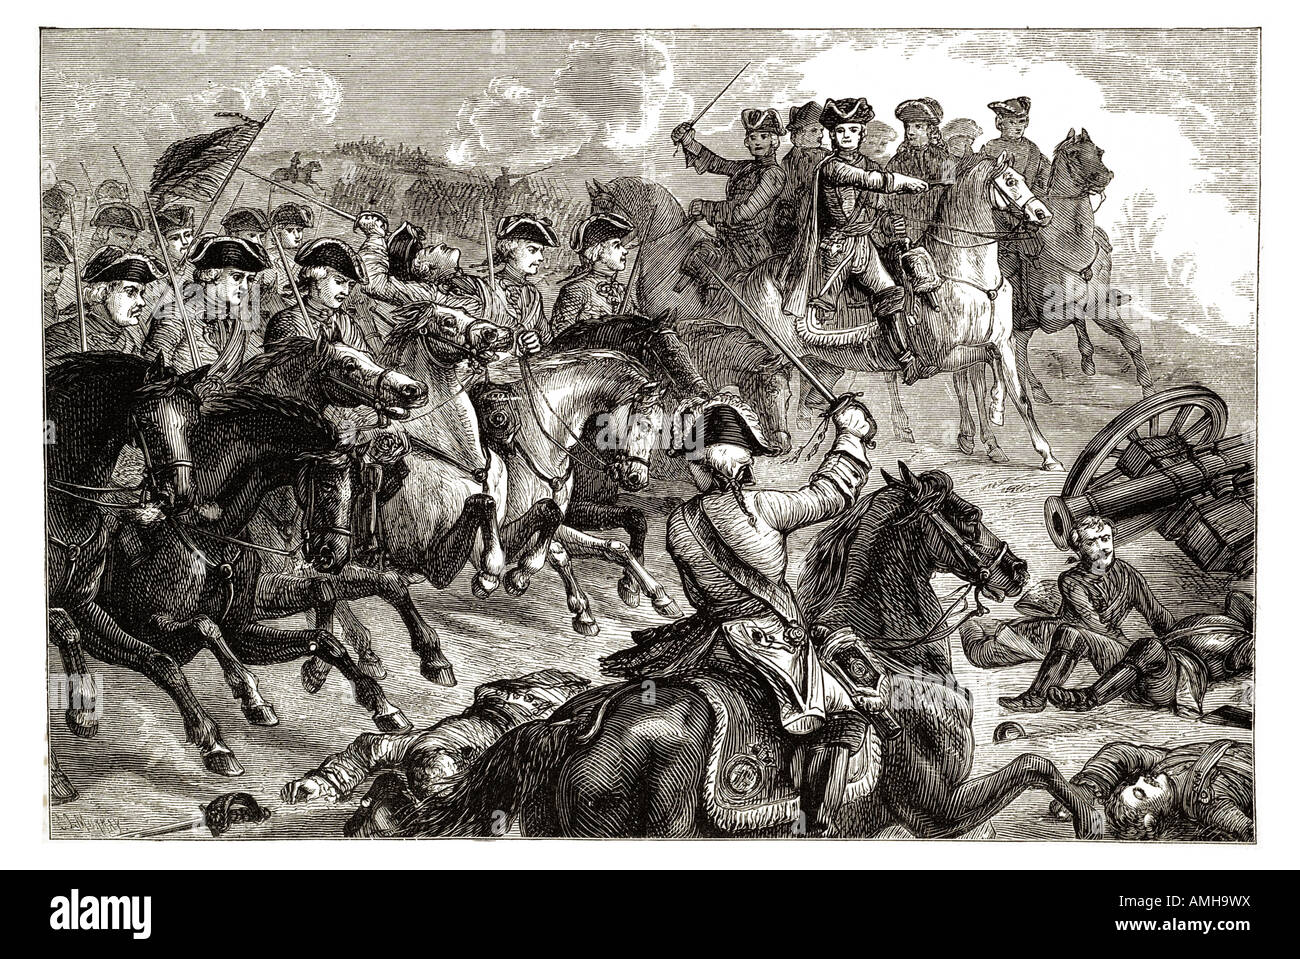 King George II  Dettingen 2nd 1743 Bavaria War Austrian Succession second Germany horse cavalry charge battle foot - Stock Image